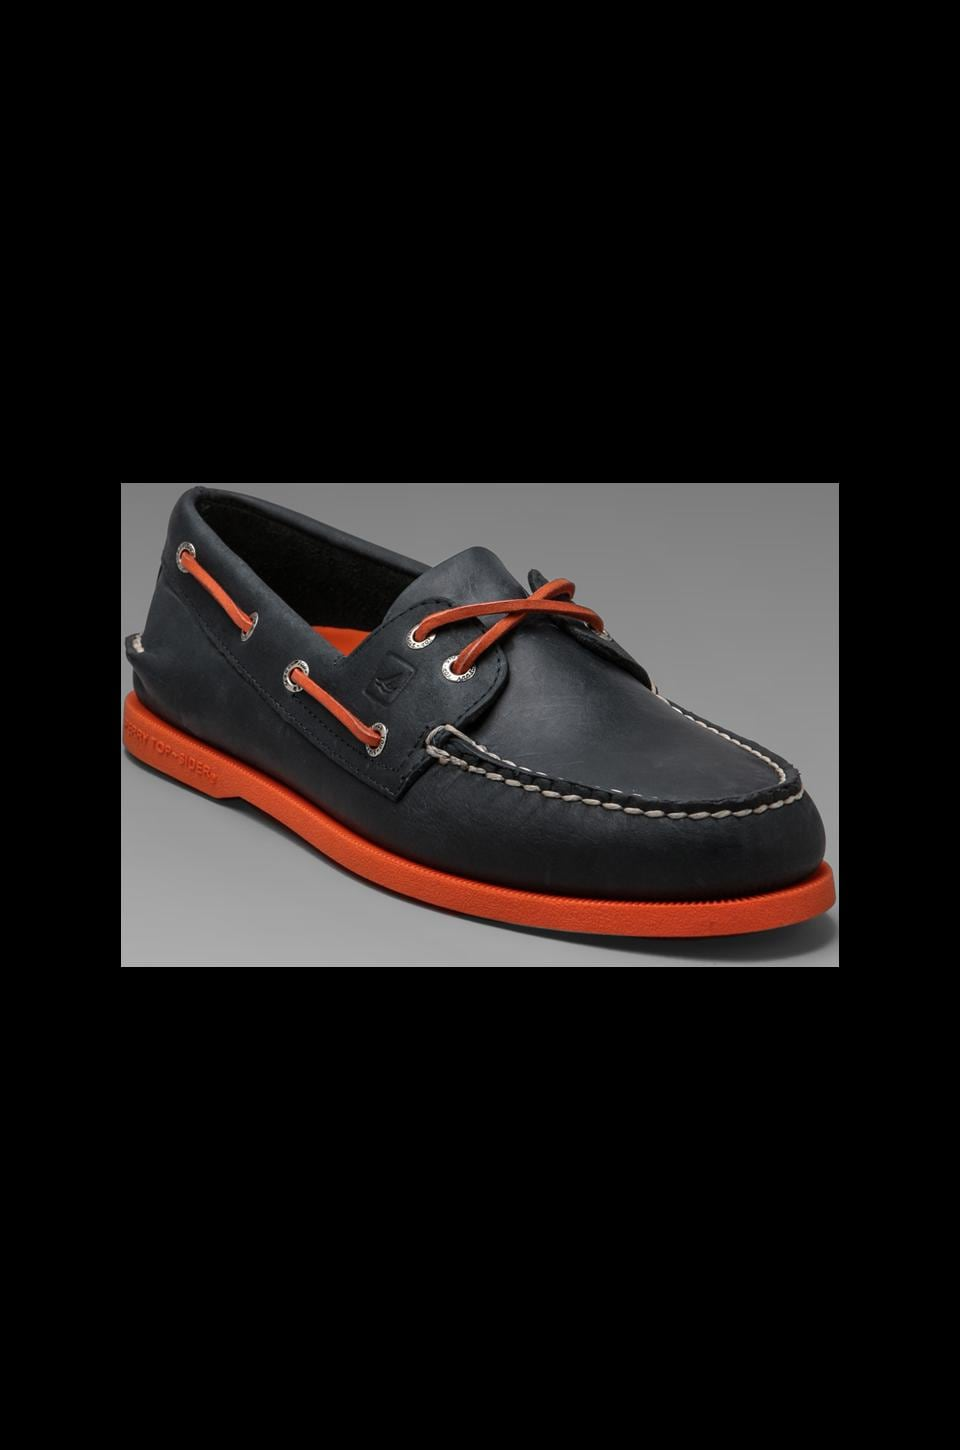 Sperry Top-Sider A/O 2-Eye Neon in Navy/Neon Orange